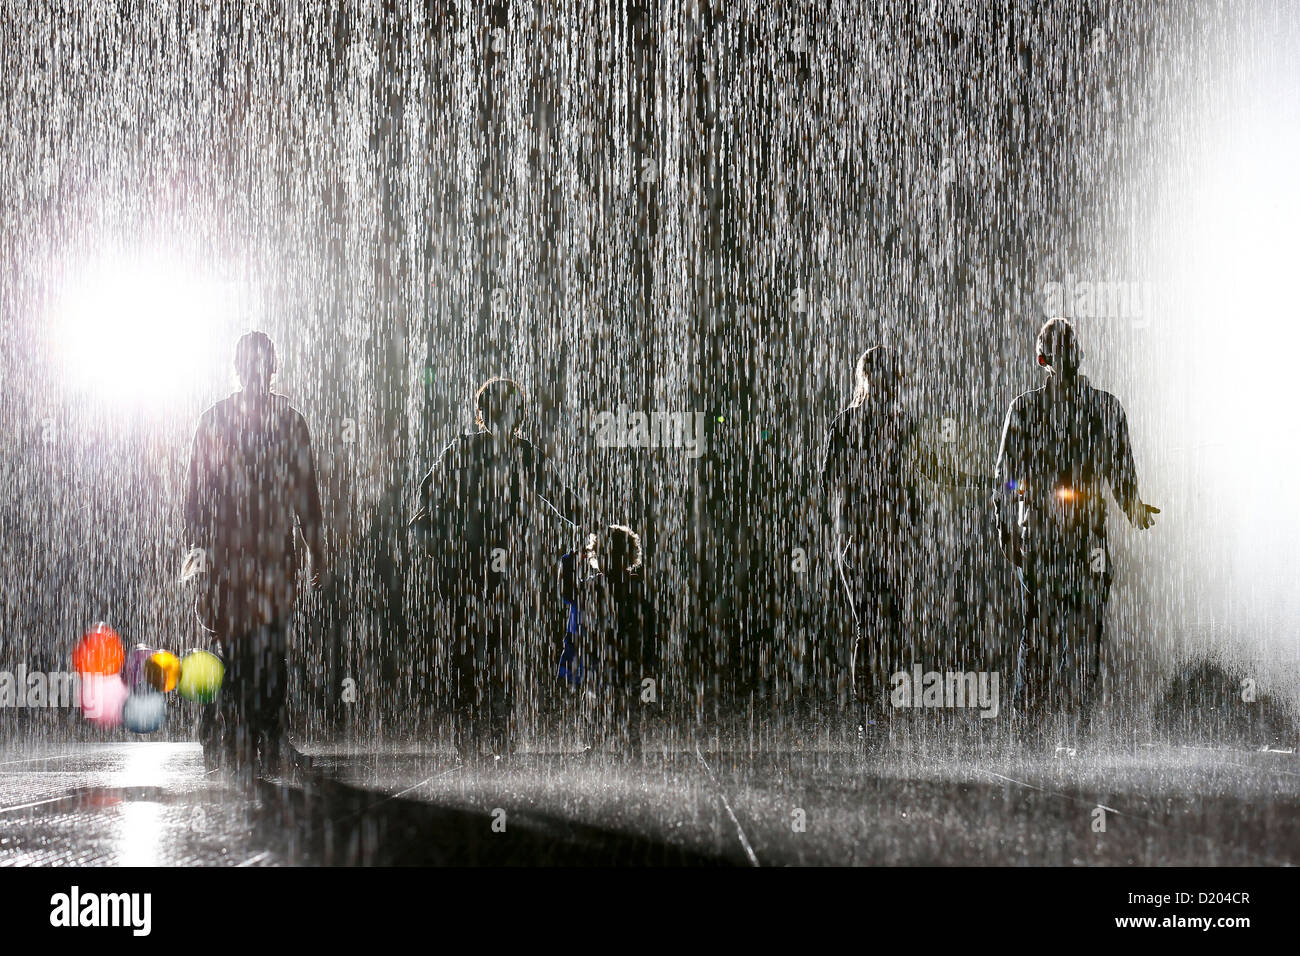 People interact with the 'Rain Room' art installation by 'Random International' at the Barbican - Stock Image